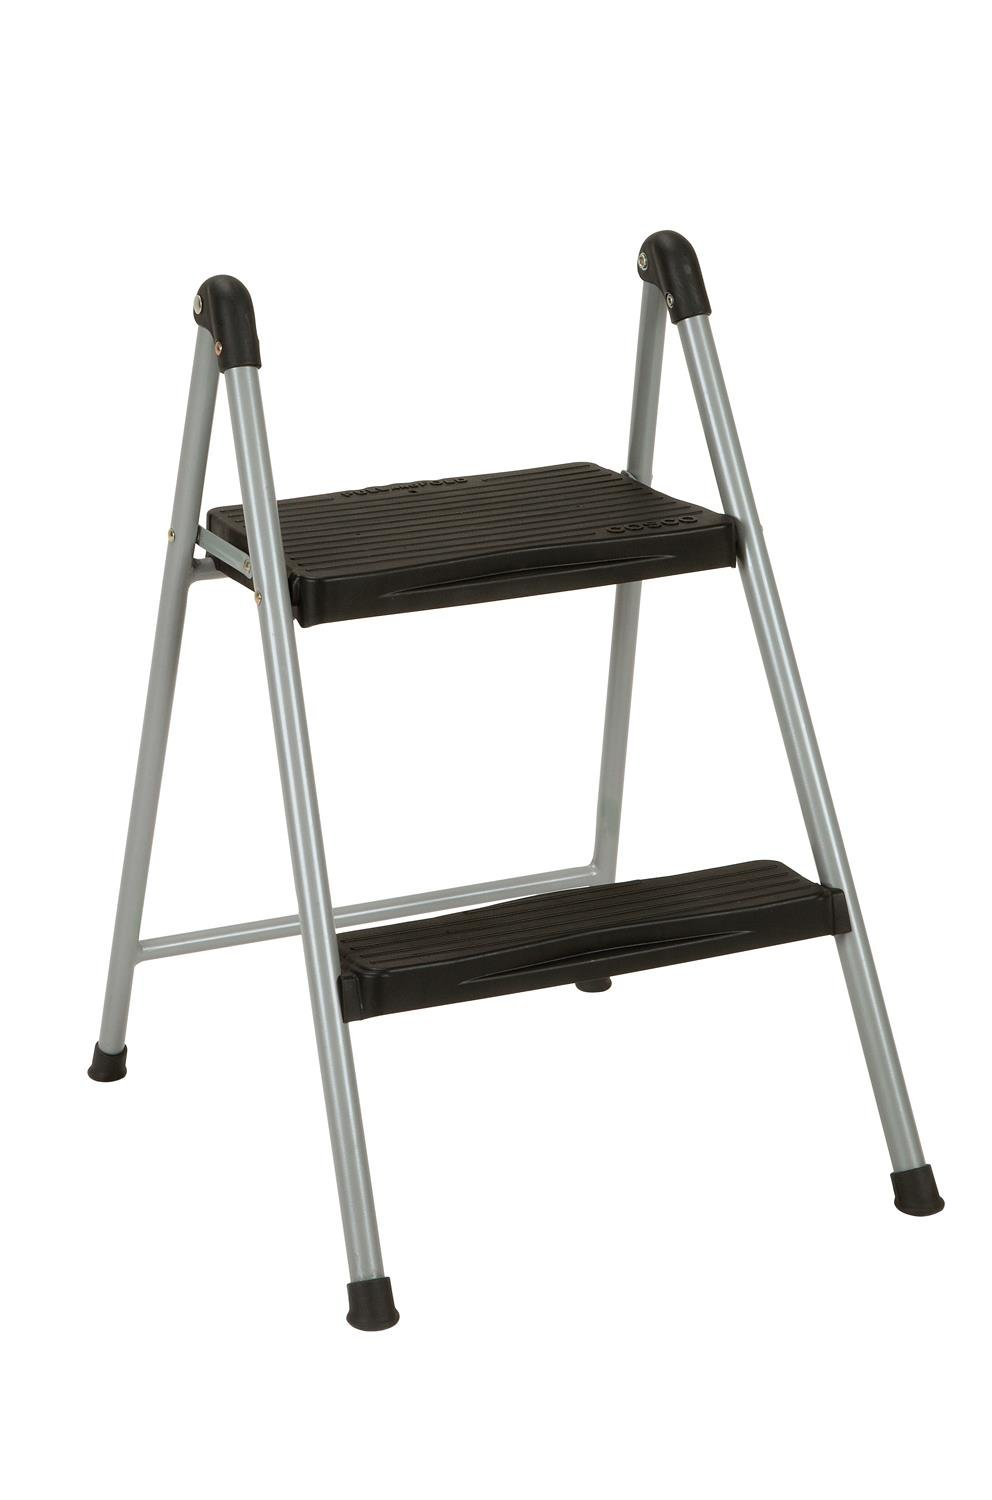 2 Step Ladder Step Stool Lightweight Folding Steel Kitchen